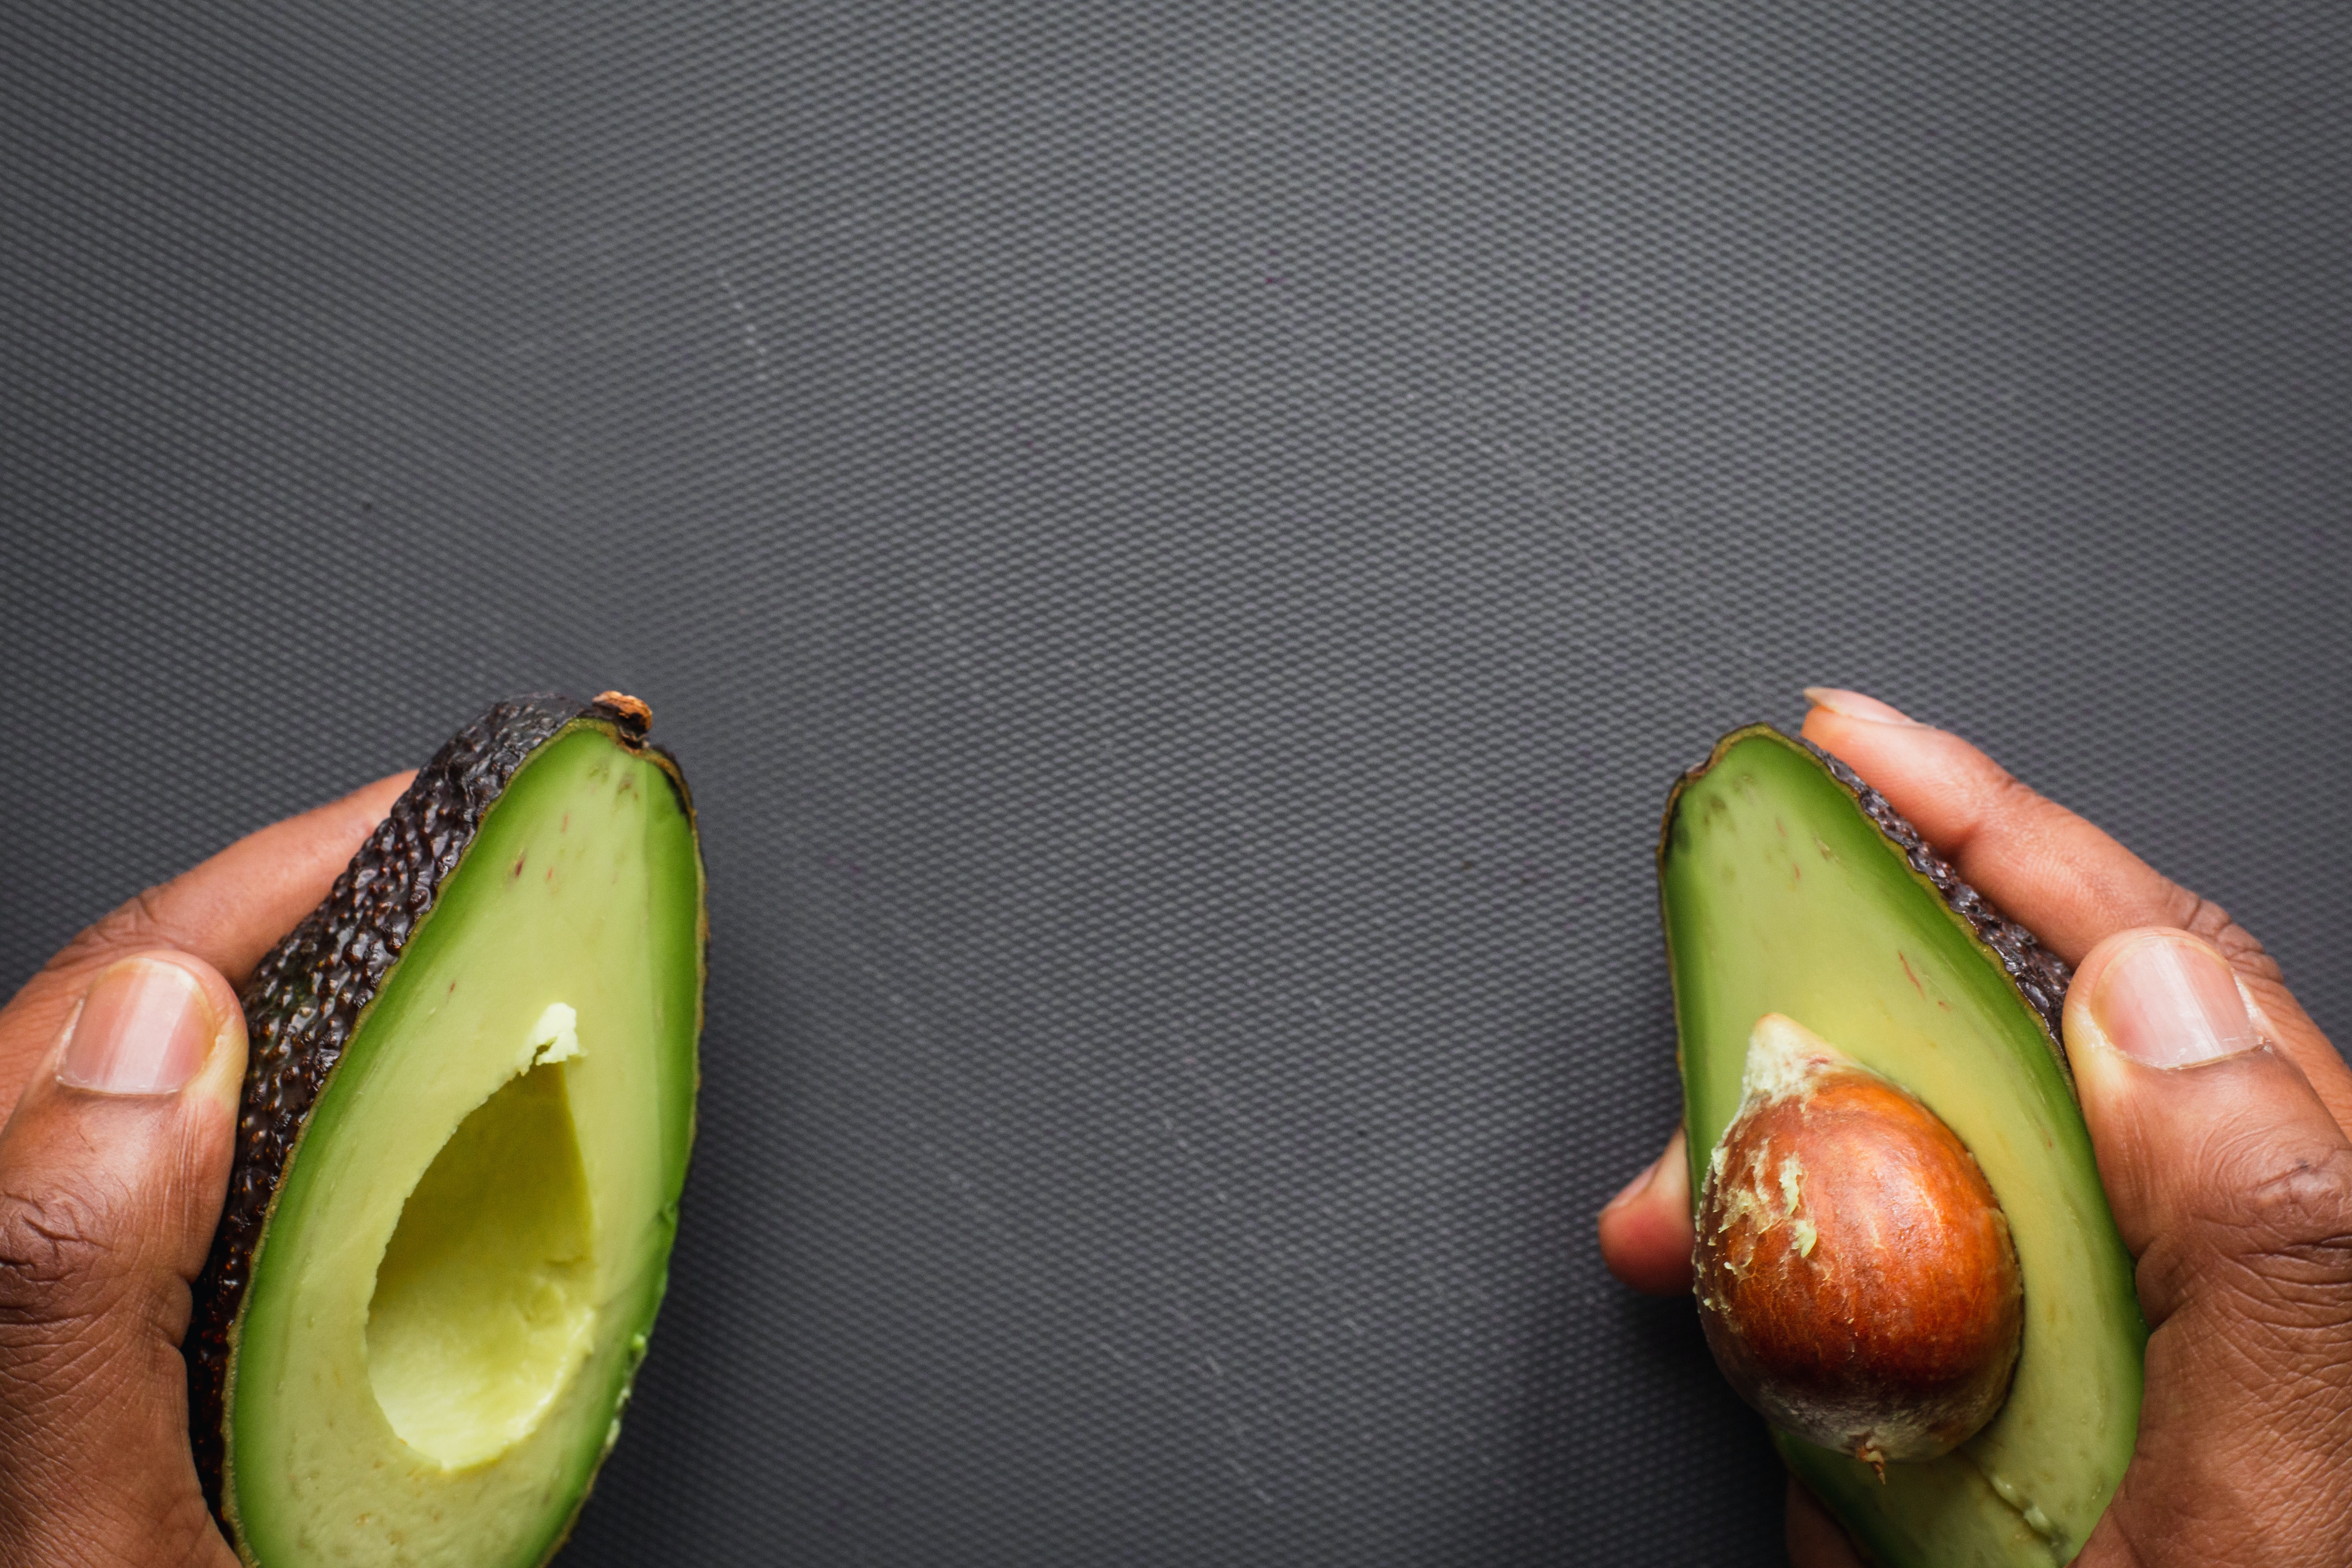 a person holding an avocado cut in half